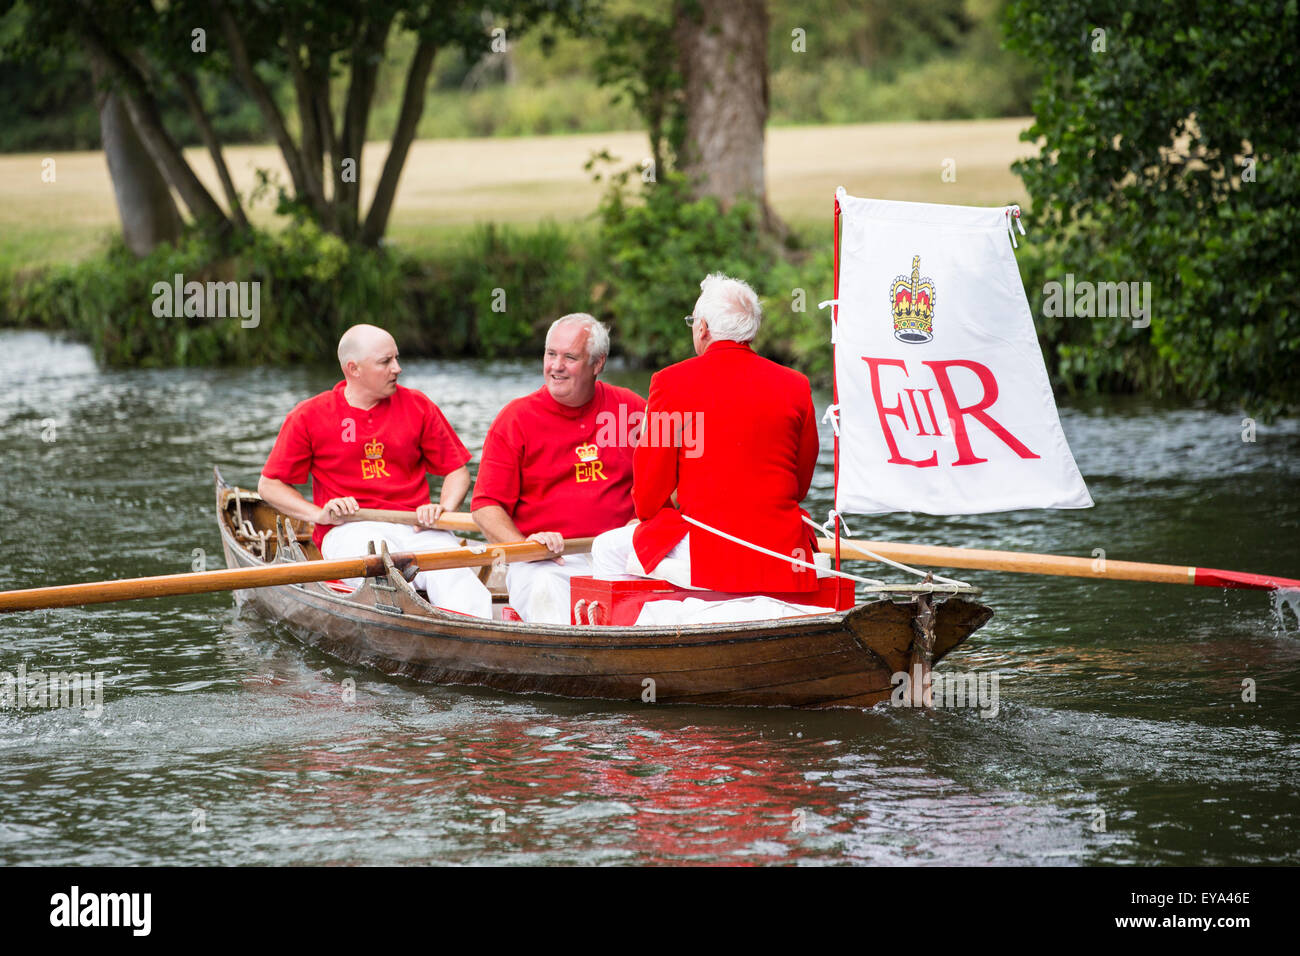 Annual Swan Upping at Henley-on-Thames 2015 - Stock Image